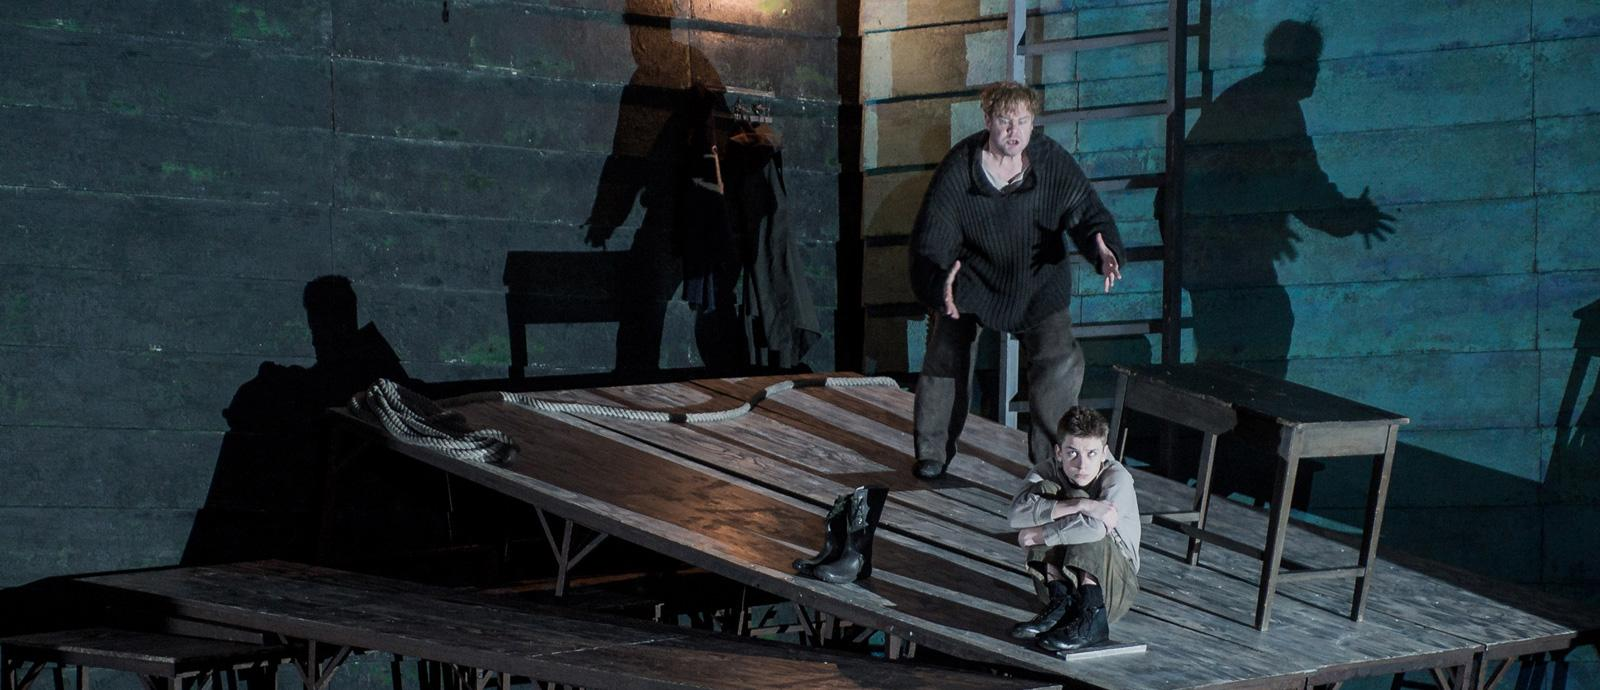 ENO Peter Grimes: Stuart Skelton as Peter Grimes and Timothy Kirrage as the Apprentice. (c) Robert Workman.